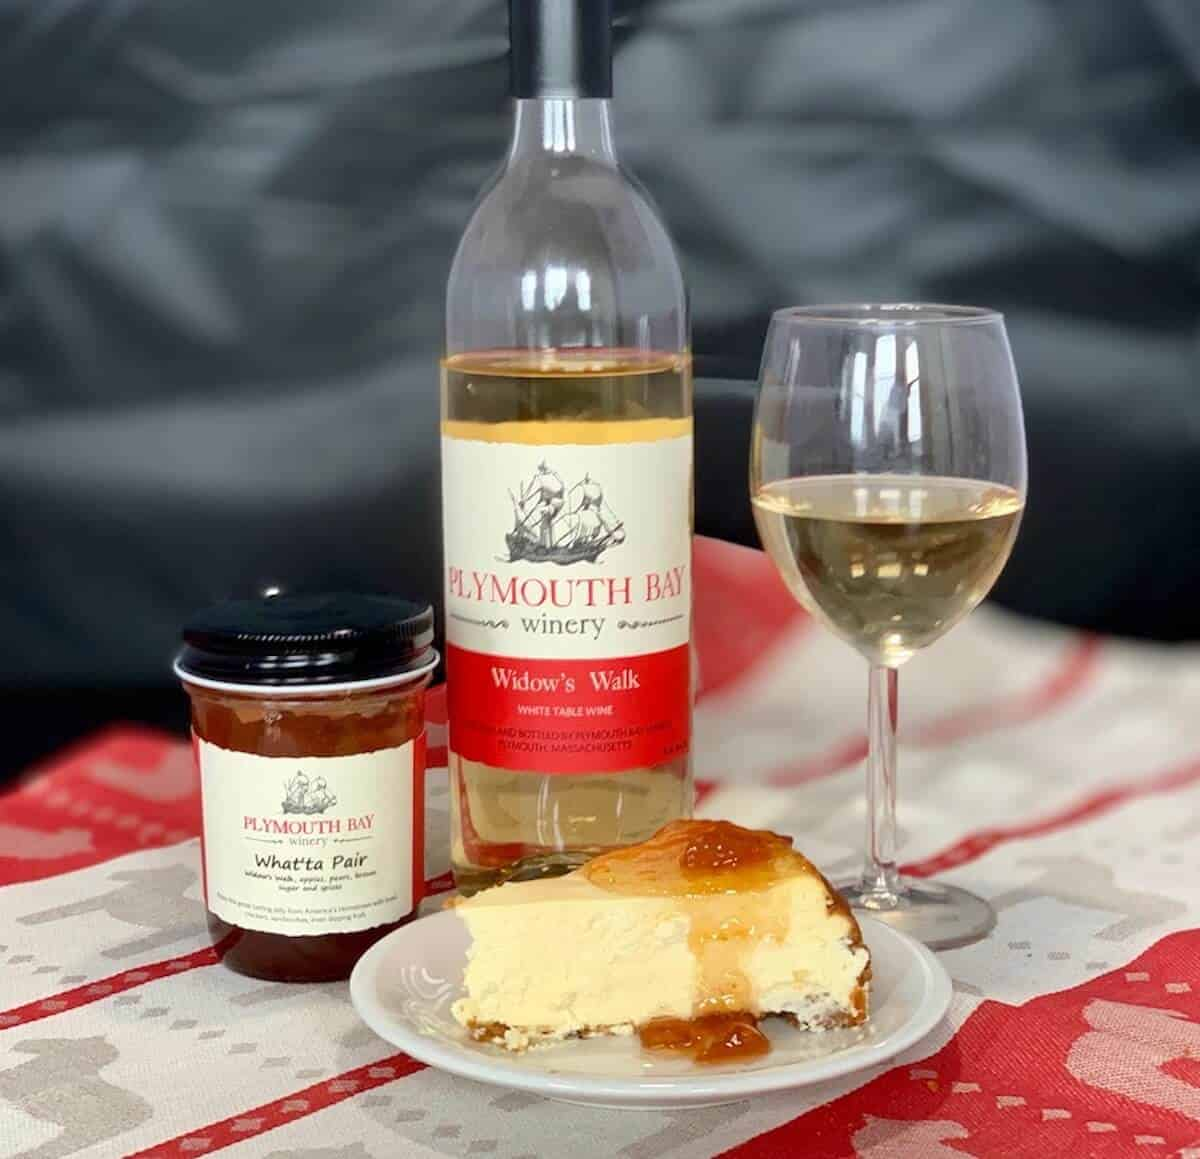 White Wine cheesecake, cheesecake, Plymouth Bay Winery, White Wine